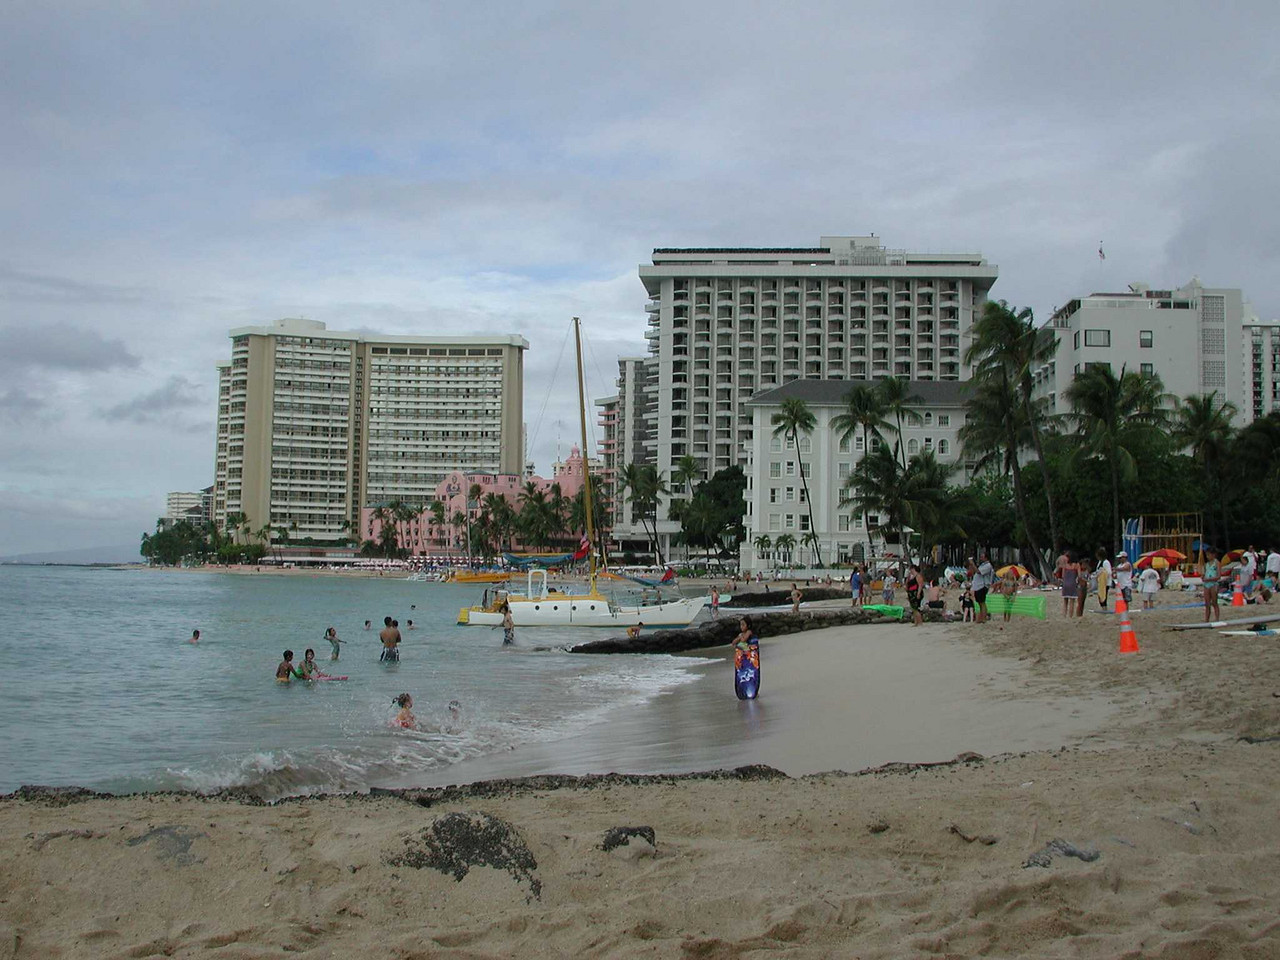 The three buildings in the background (white, pink, then sand) were hotels, and the beaches there were wall to wall with tourists.